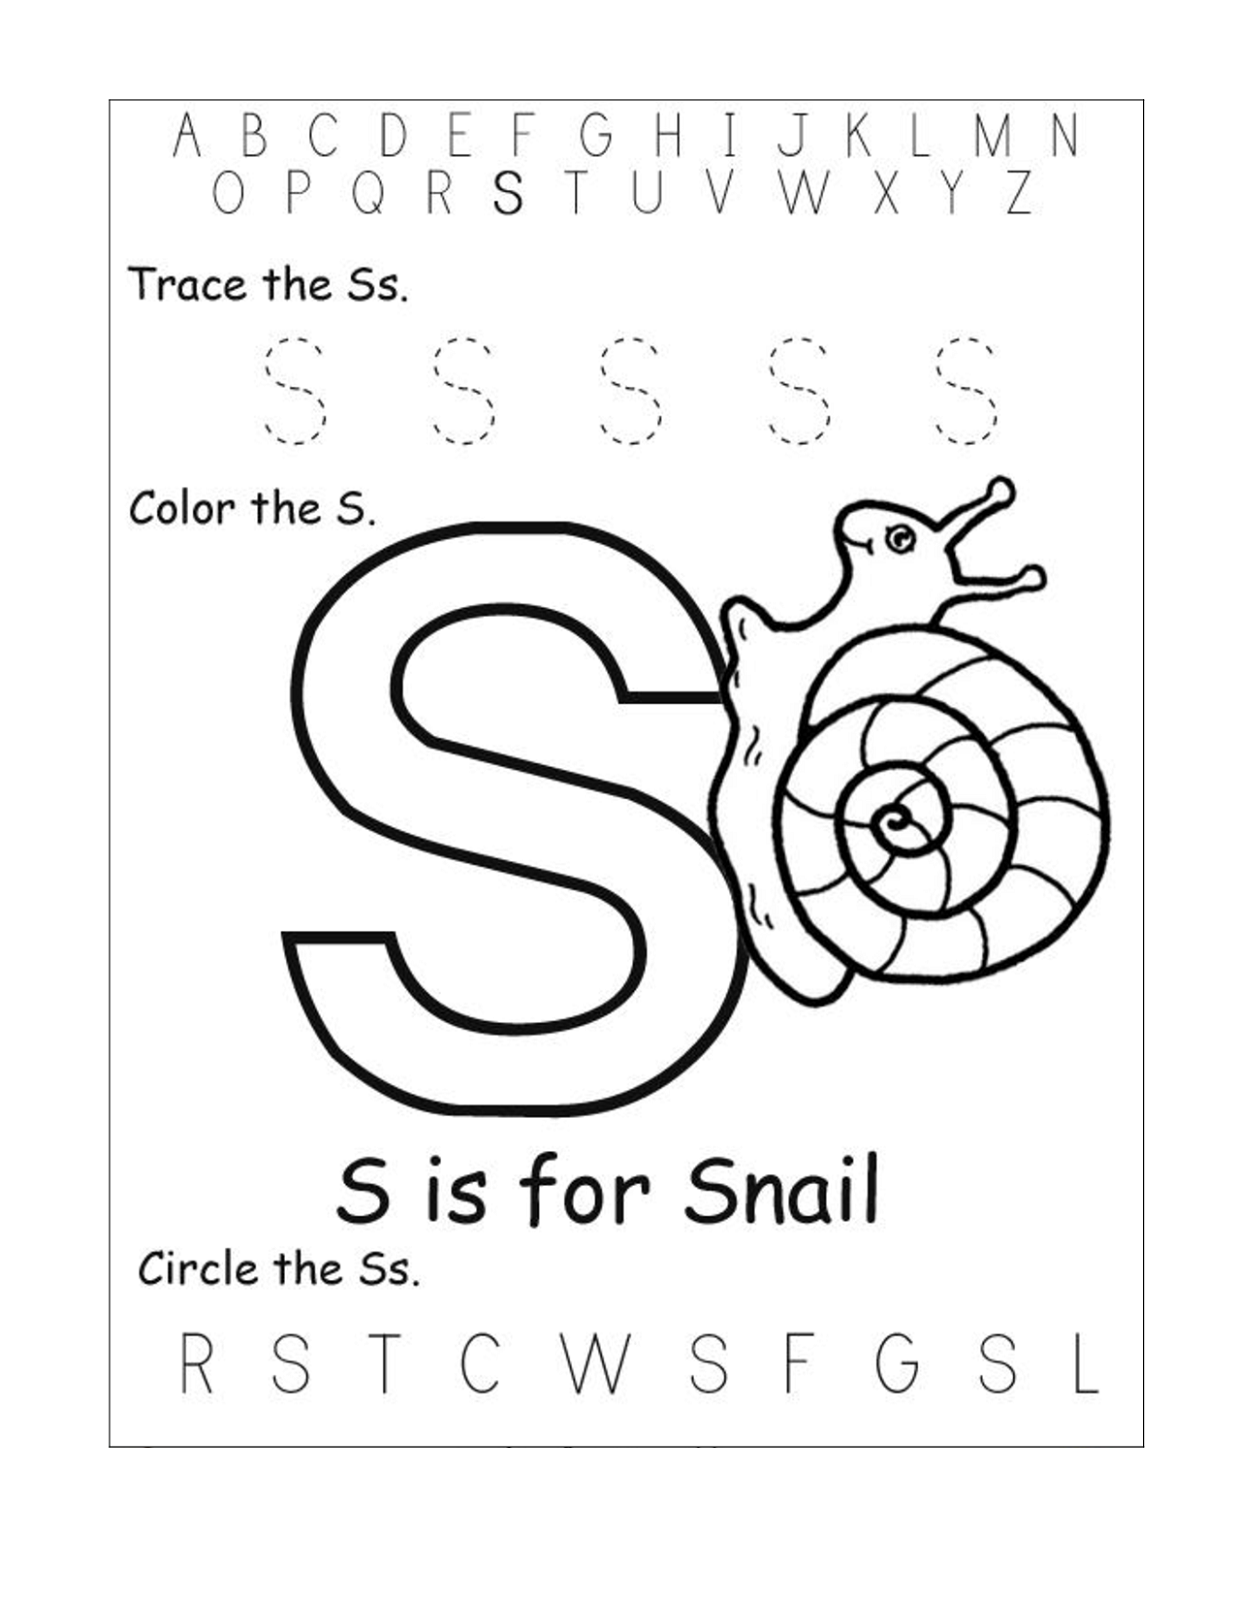 Worksheets Free Pre Kindergarten Worksheets pre k drawing worksheets at getdrawings com free for personal use 1236x1600 kids printables worksheet math worksheets